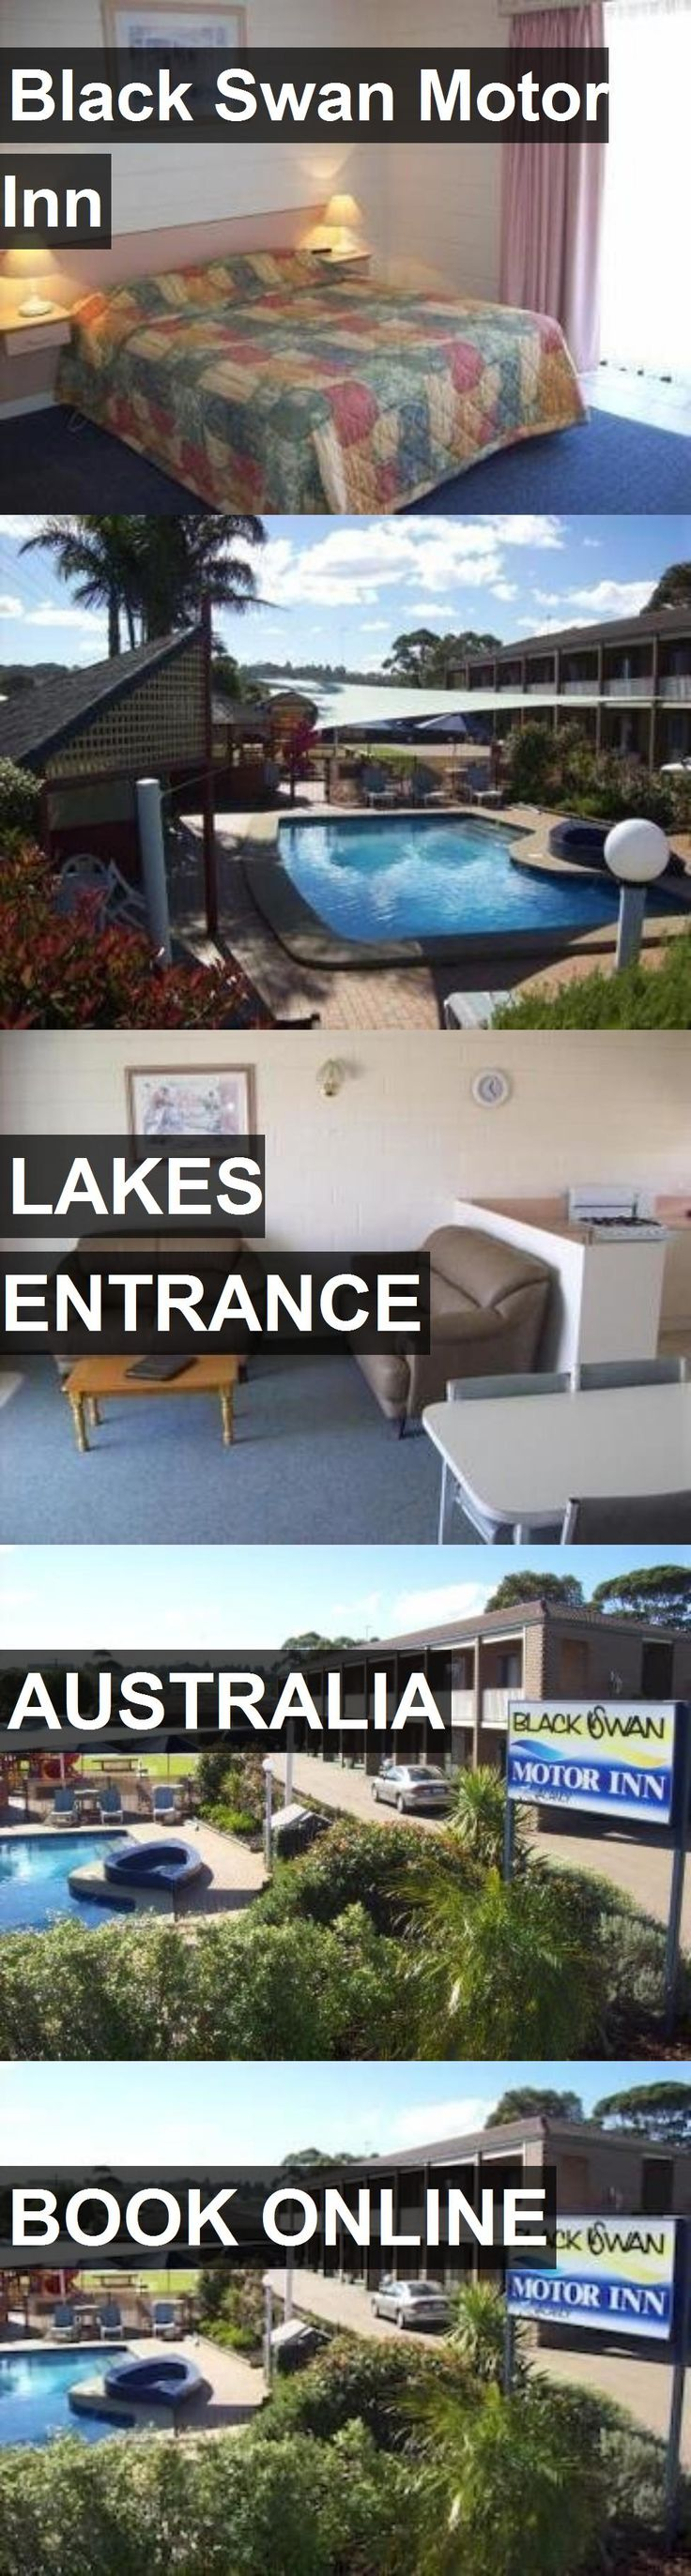 Hotel Black Swan Motor Inn in Lakes Entrance, Australia. For more information, photos, reviews and best prices please follow the link. #Australia #LakesEntrance #BlackSwanMotorInn #hotel #travel #vacation